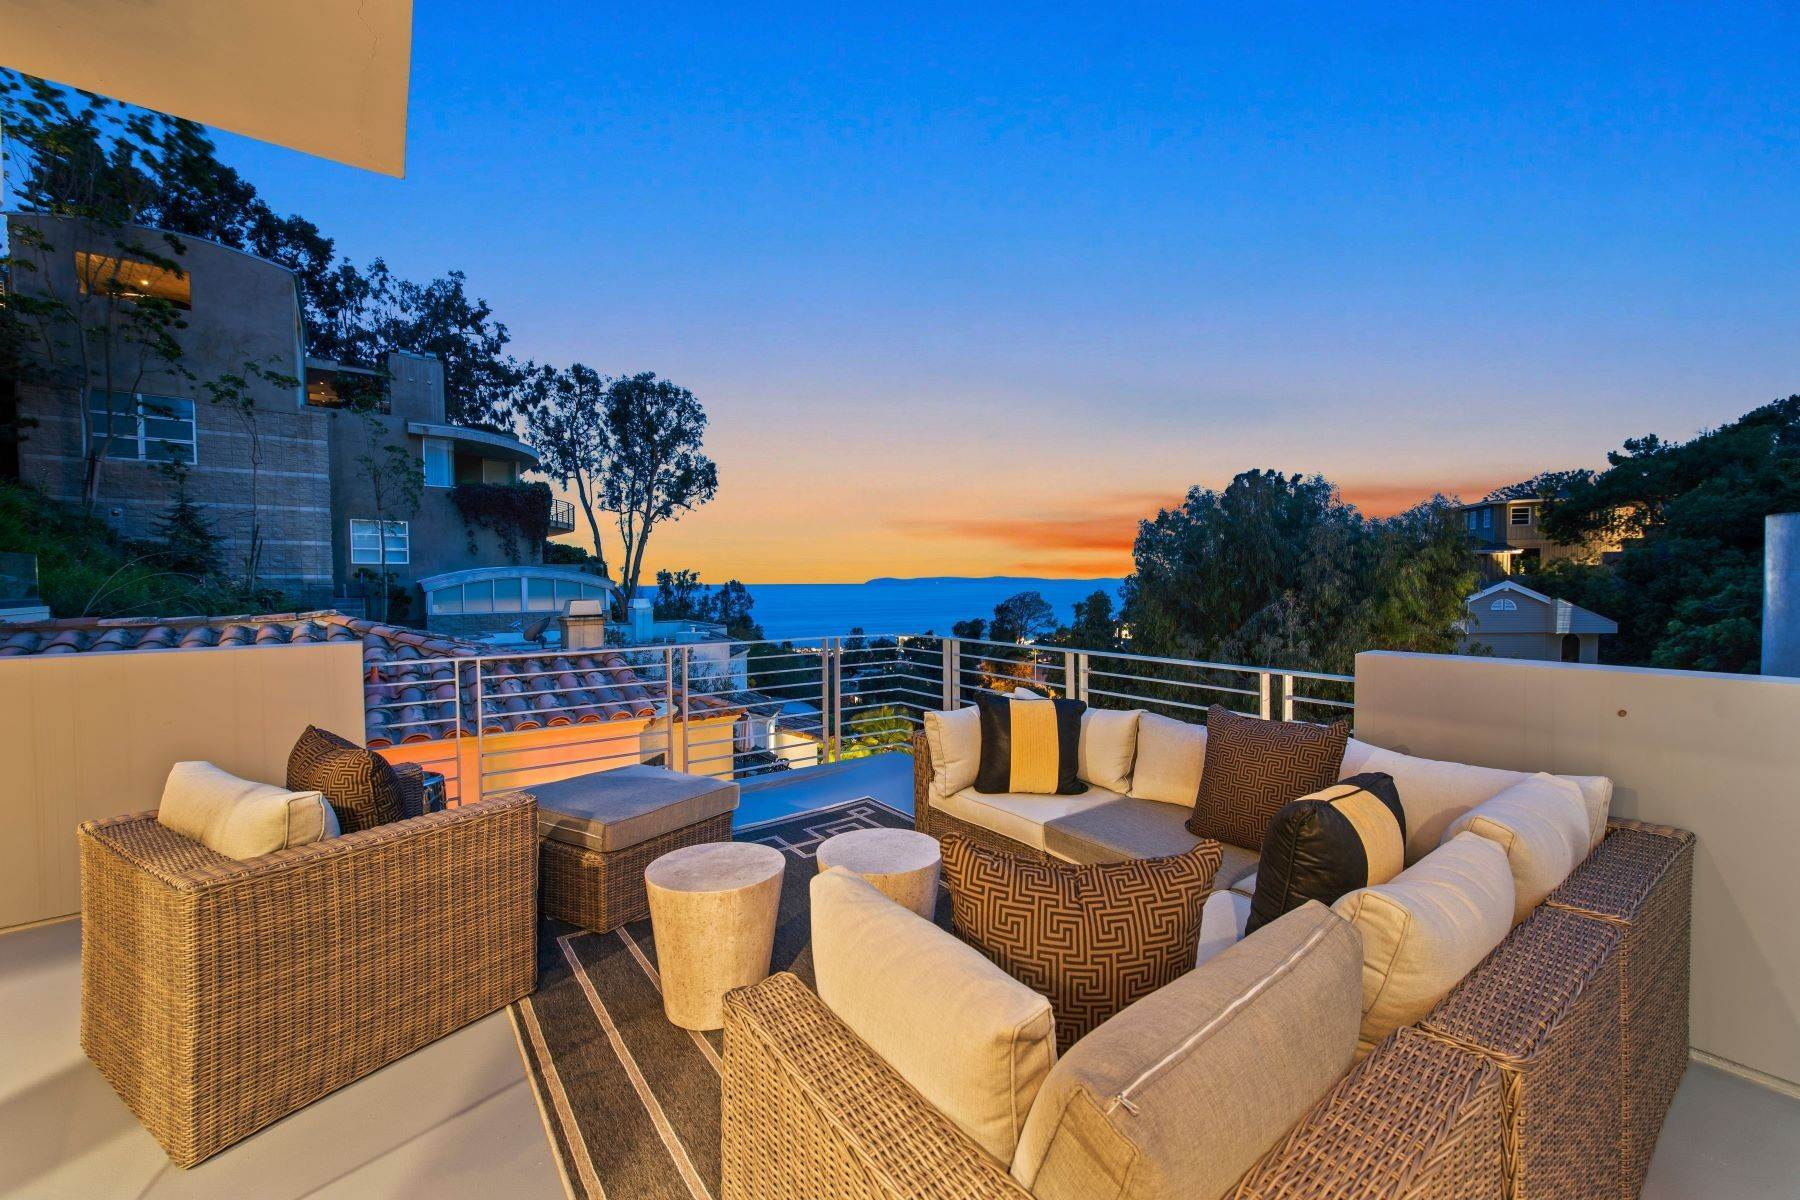 Single Family Homes for Sale at 845 Summit Drive, Laguna Beach, CA 92651 845 Summit Drive Laguna Beach, California 92651 United States